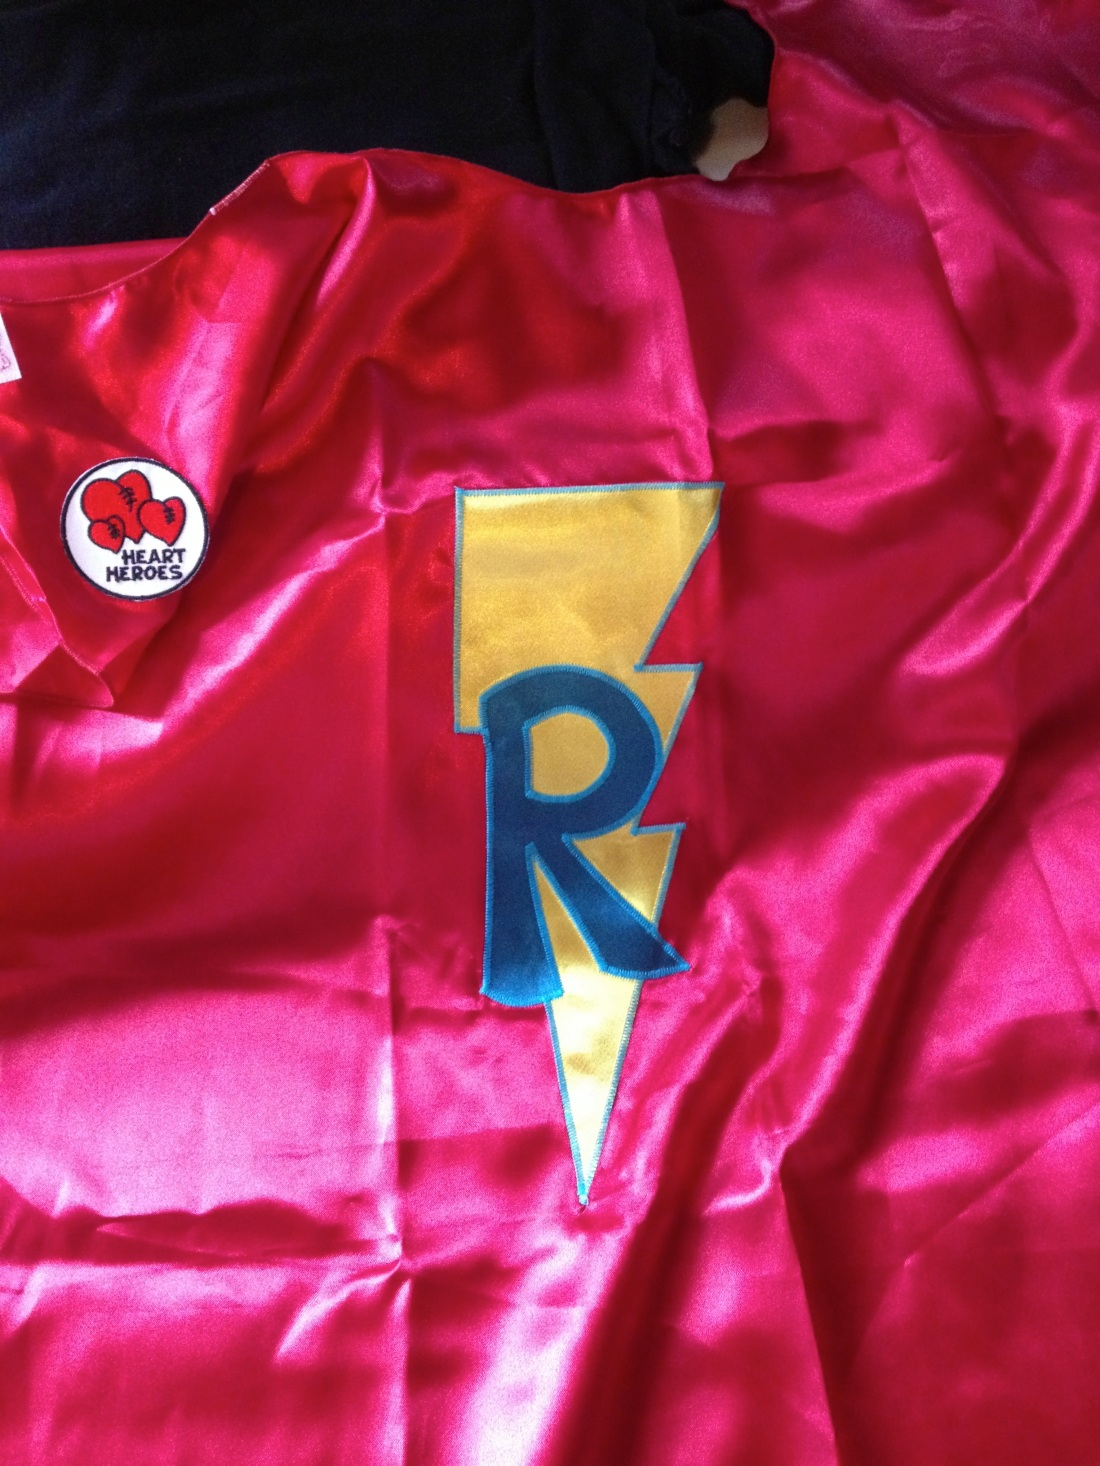 "Powercapes.com sent Rudy this cool ""Heart Hero"" cape to wear to doctor appointments and procedures!  Fun idea!"